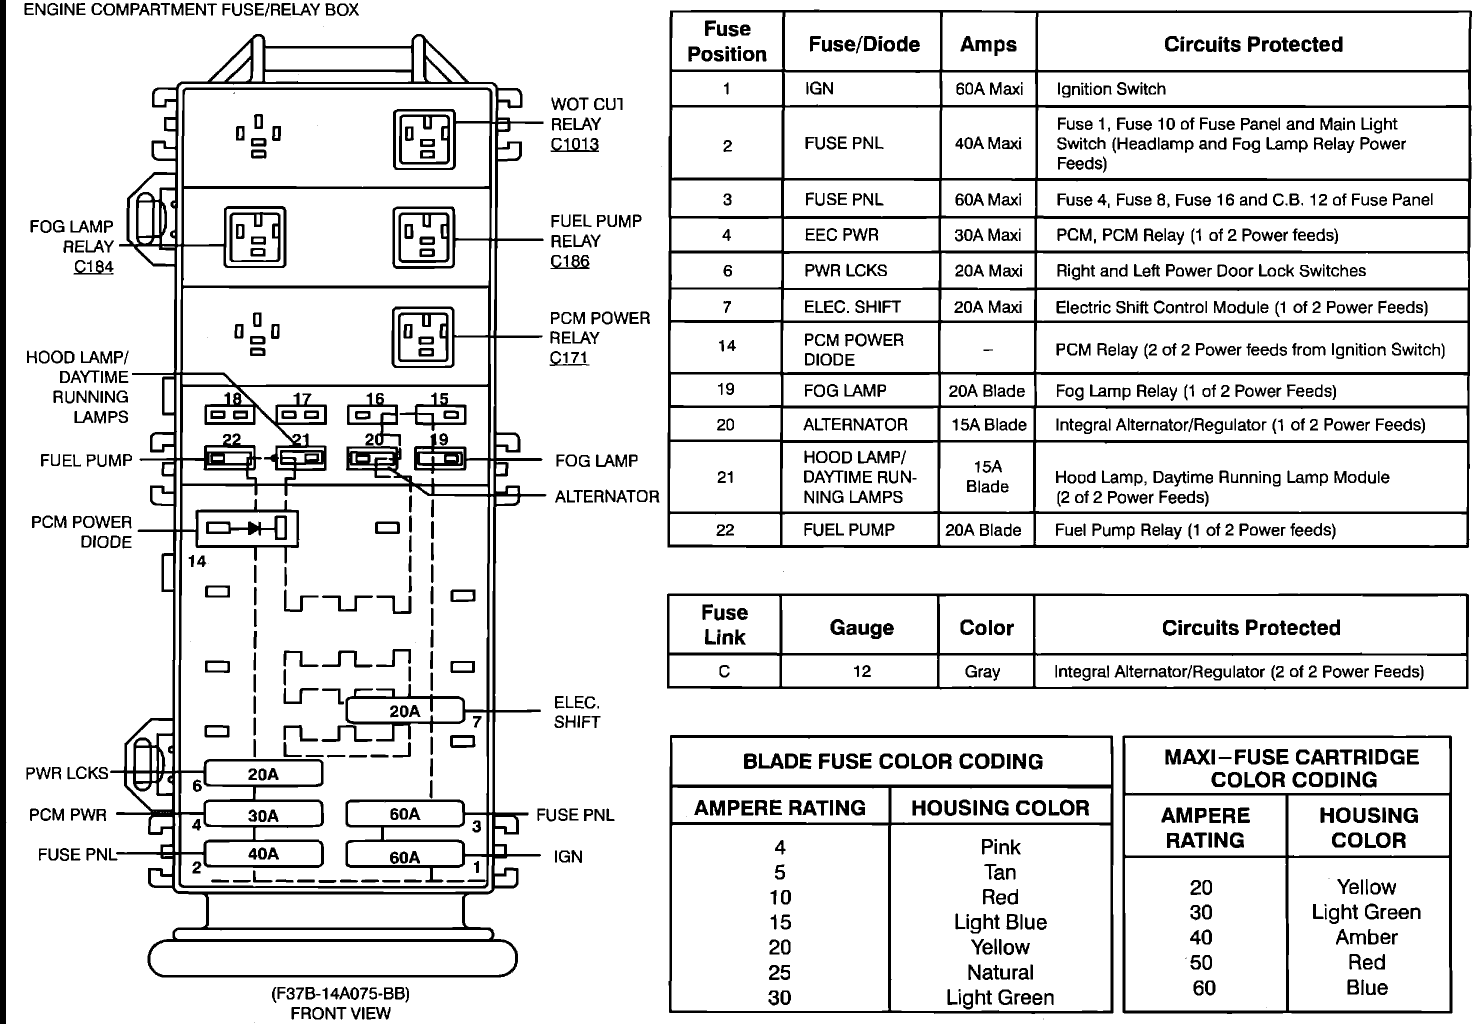 94 ford fuse box diagram so schwabenschamanen de \u2022 94 Accord Fuse Panel Diagram 1995 ford ranger fuse diagram wiring block diagram rh 8 20 oberberg sgm de 94 ford f150 fuse box diagram 94 ford econoline fuse box diagram